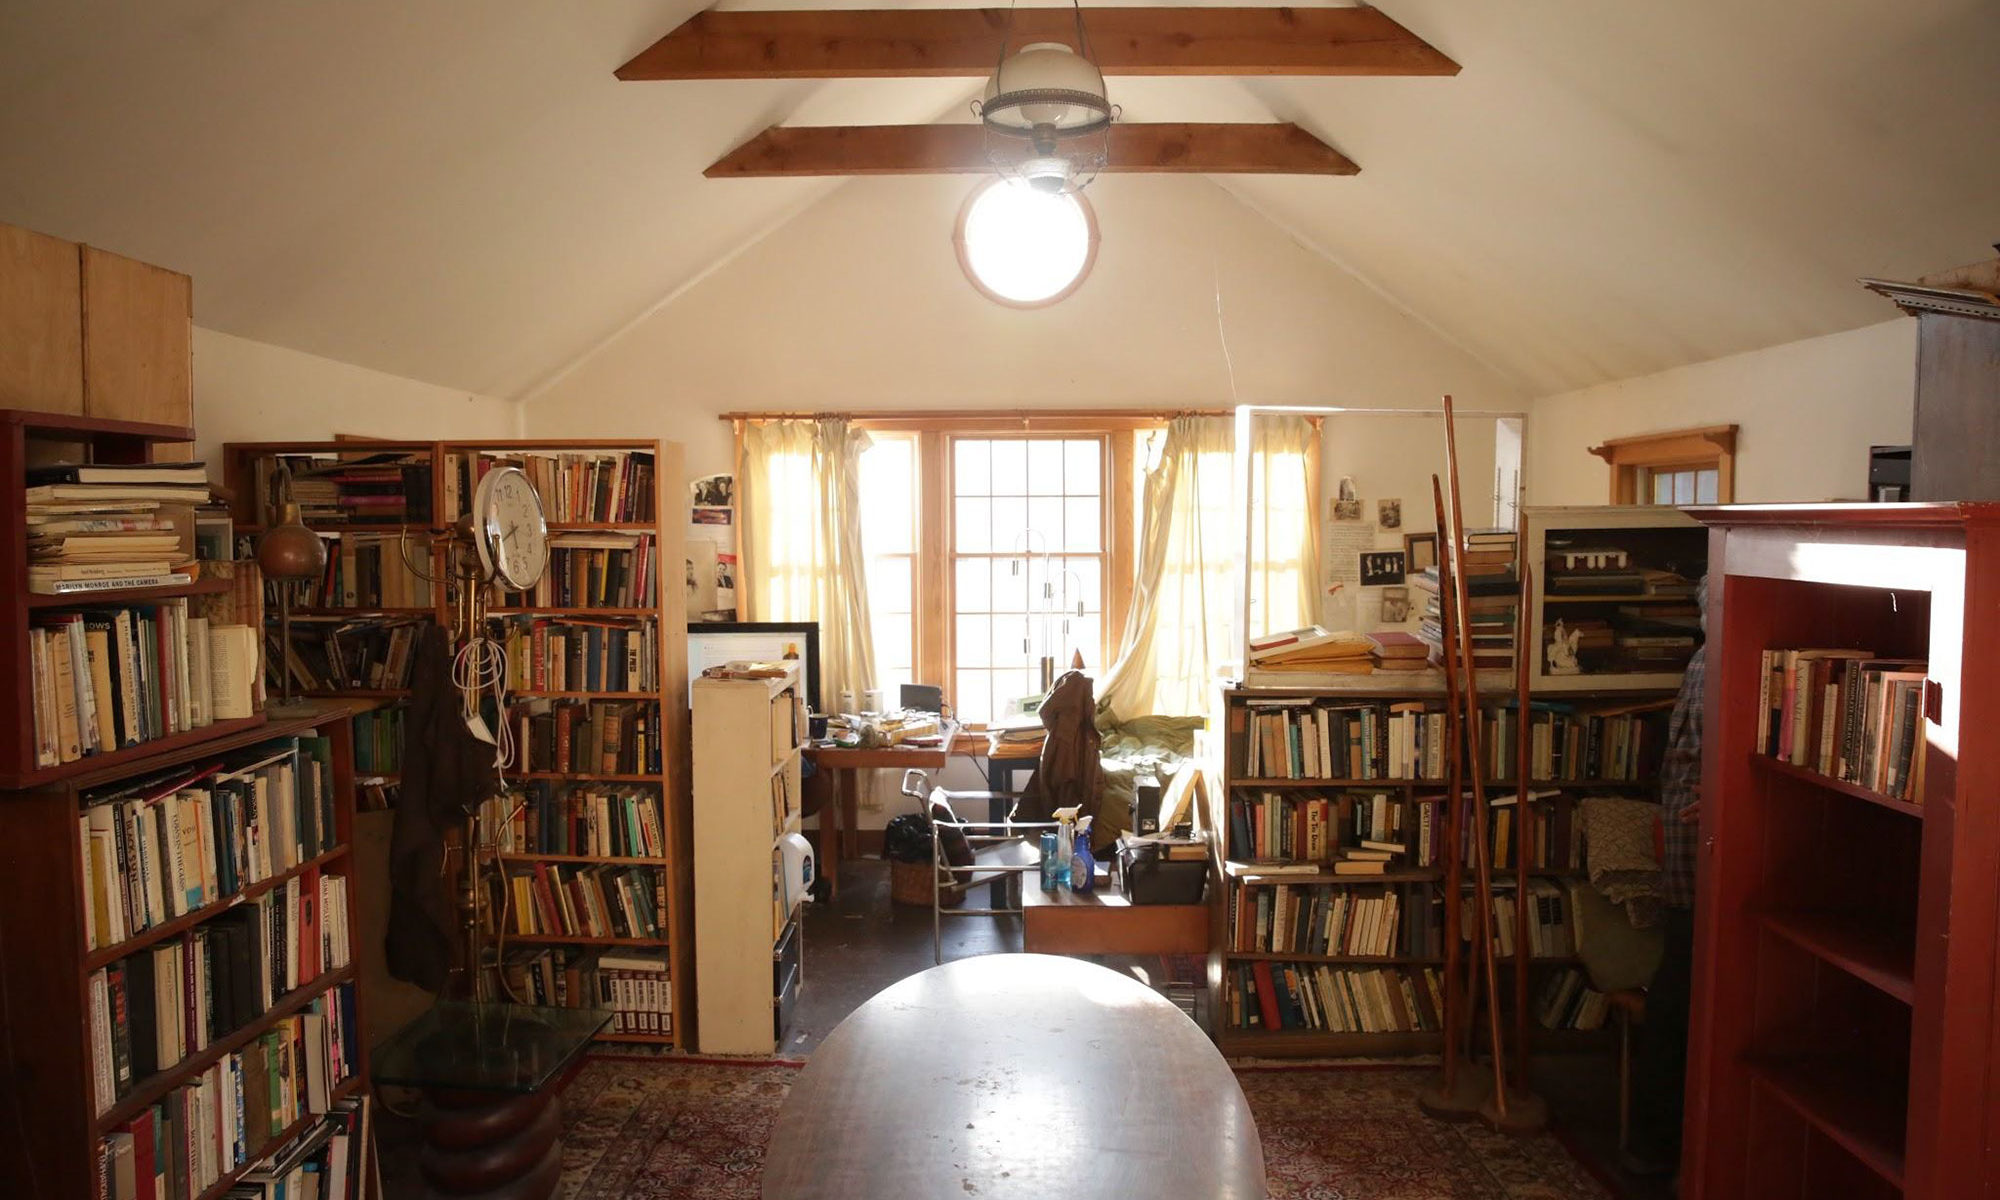 The Astrology Library